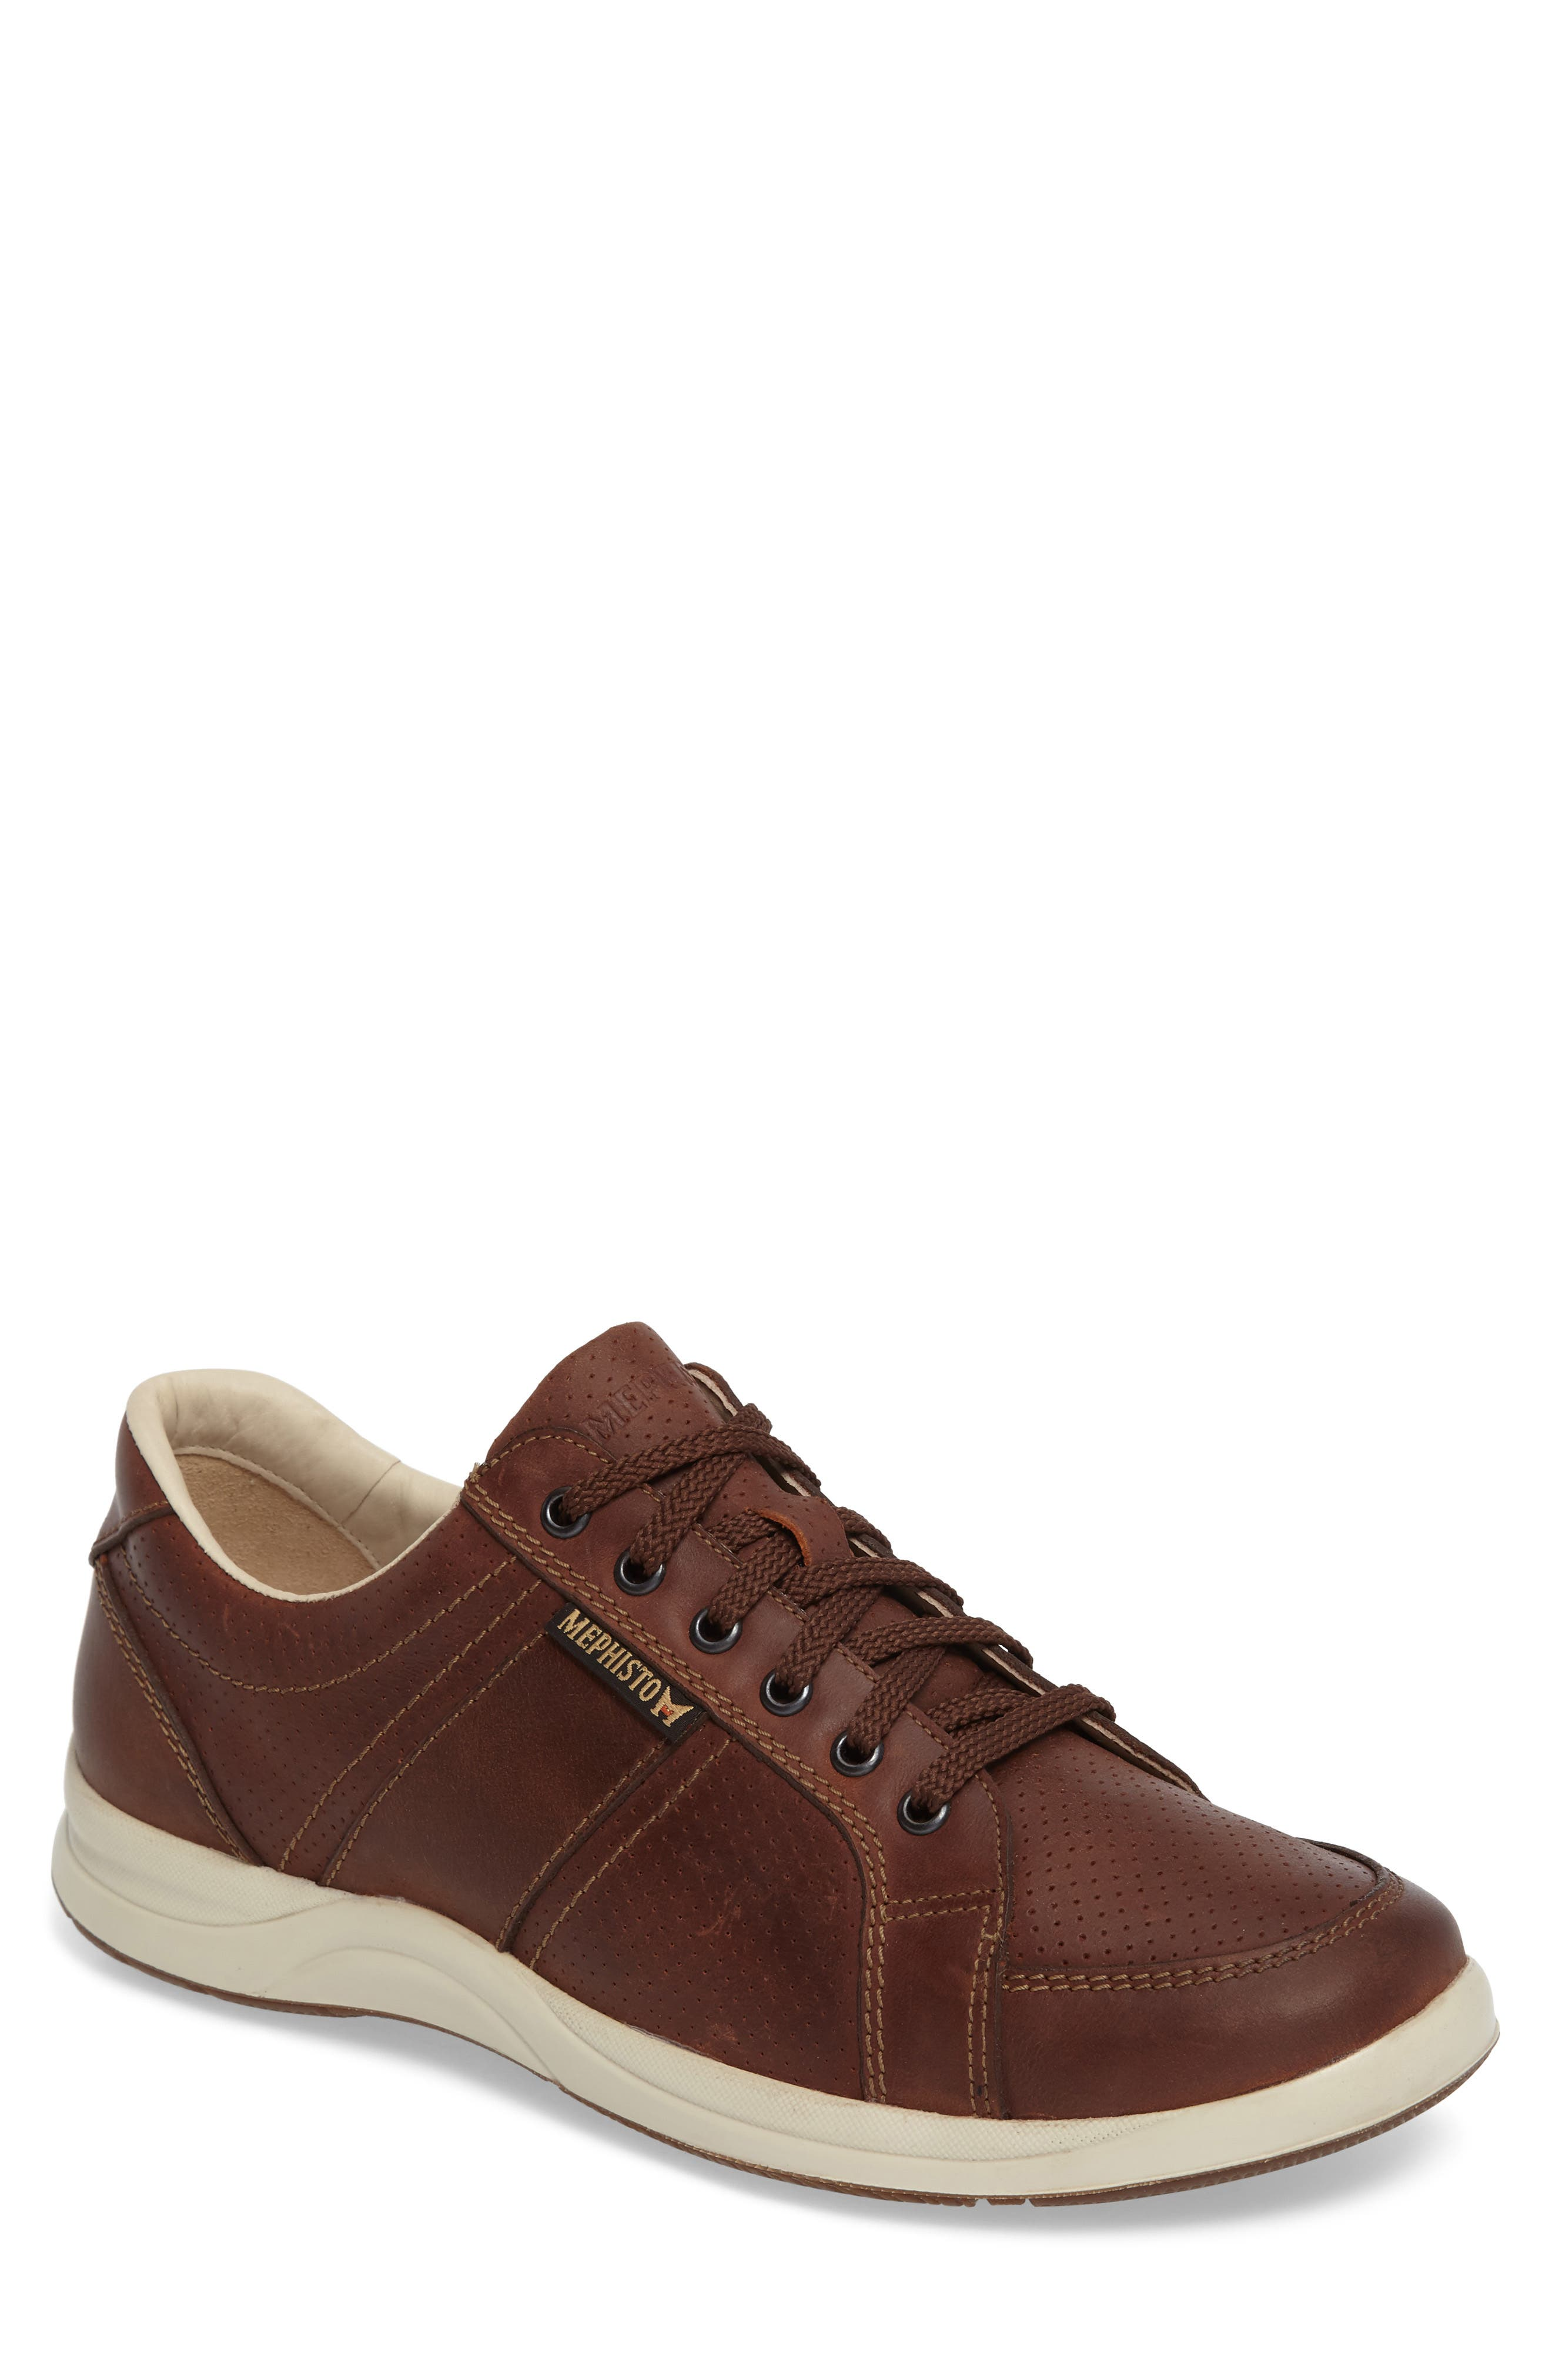 'Hero' Perforated Sneaker,                             Main thumbnail 1, color,                             Chestnut Nubuck Leather